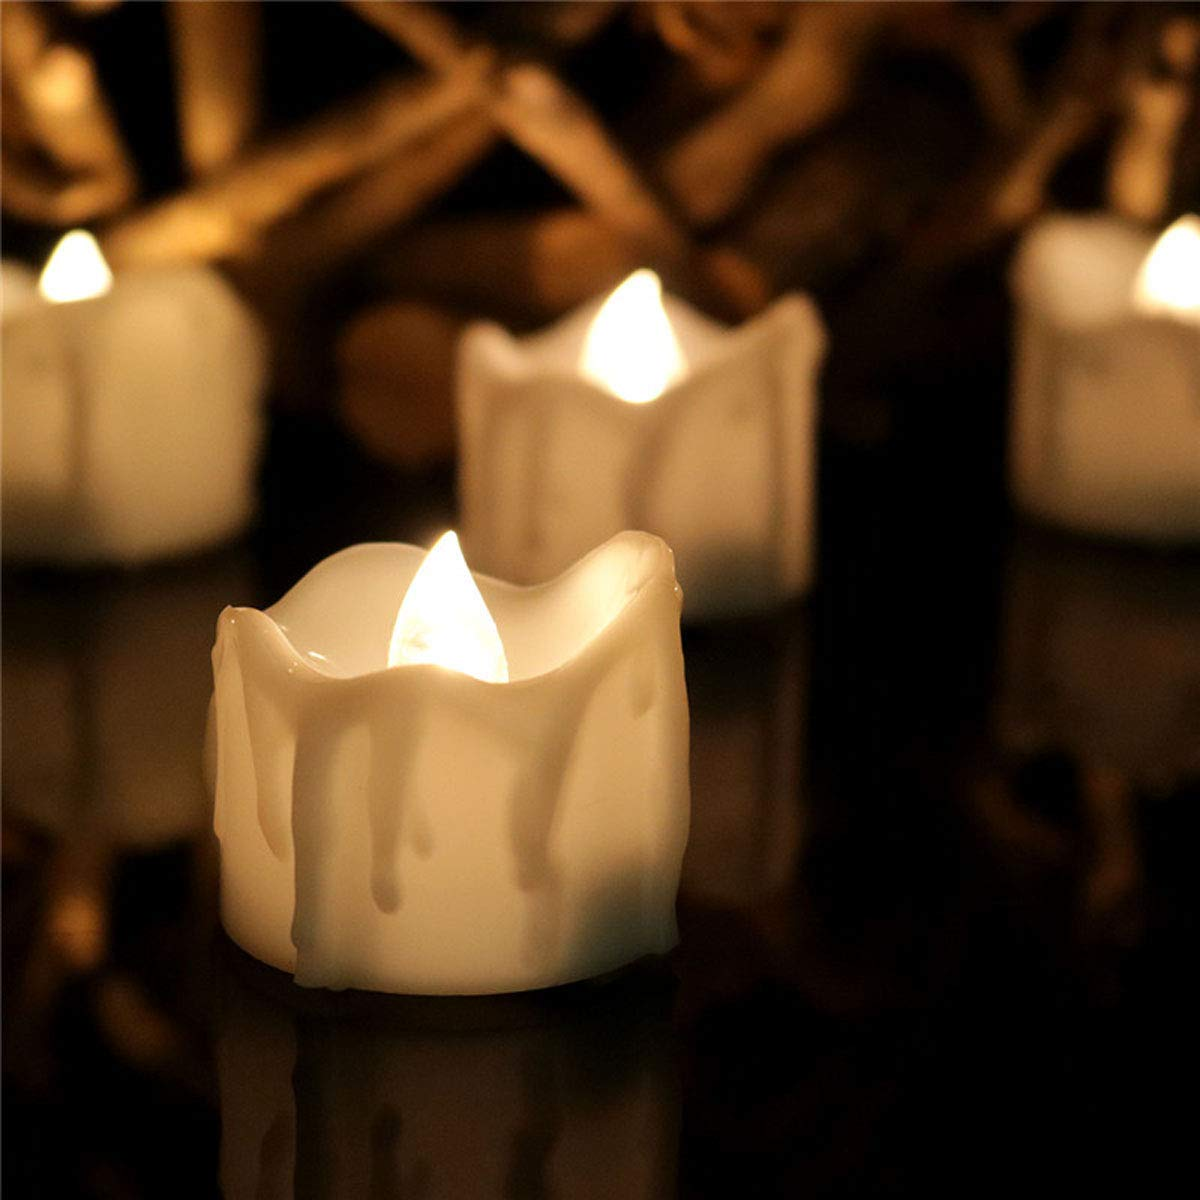 Dellukee Led Flameless Candles White Timer Drop Tear Flickering Realistic Battery Operated Tea Lights for Wedding Birthday Party Decoration, Pack of 12, Electric Fake Candle in Warm White